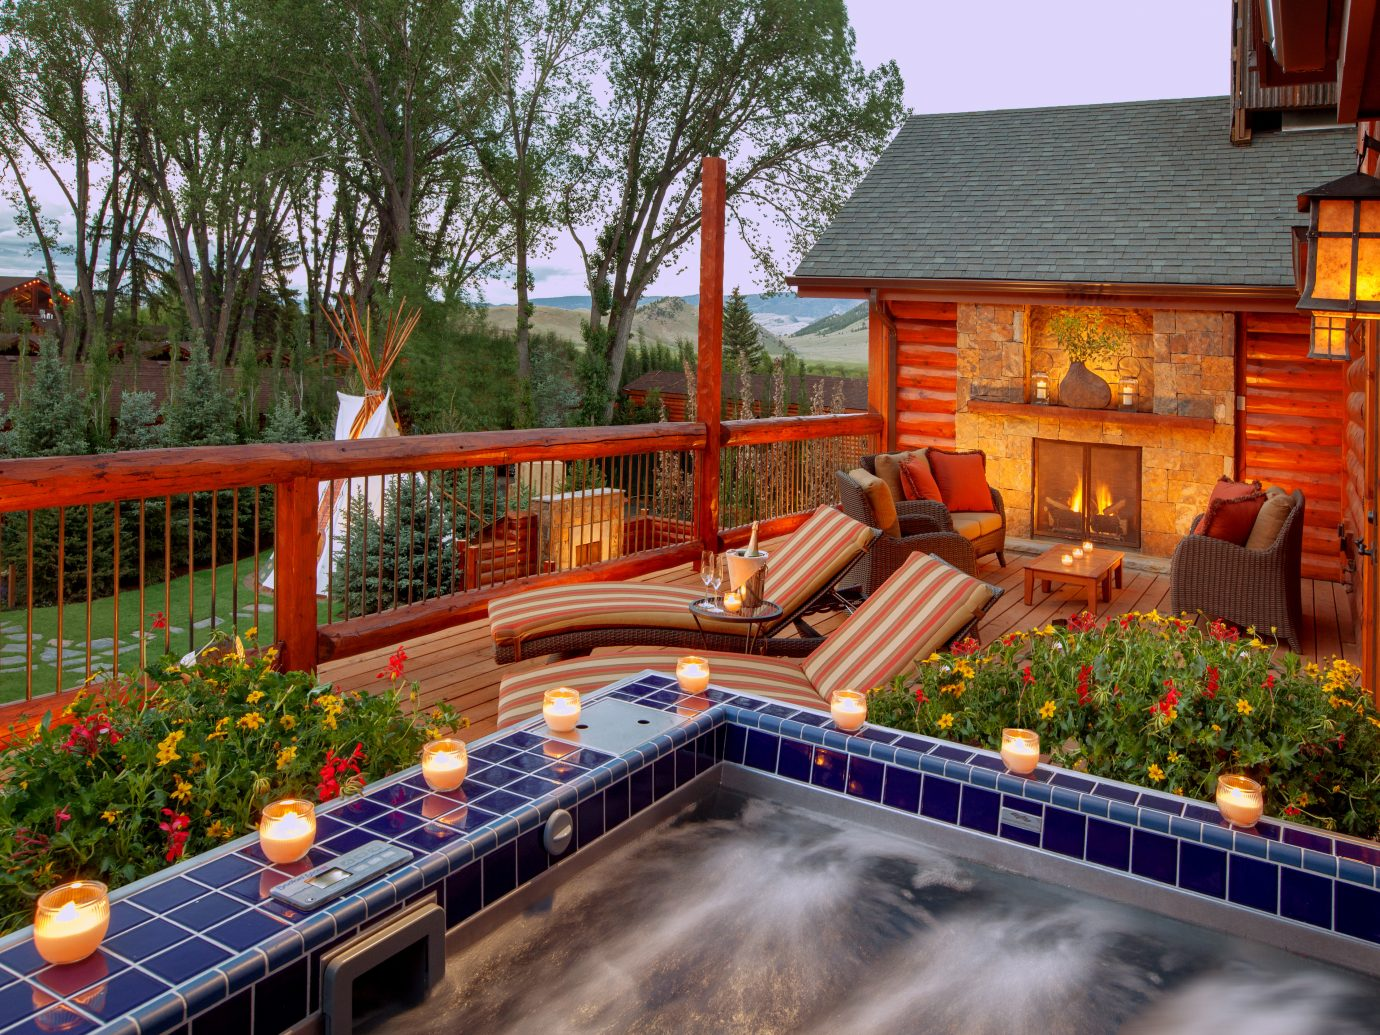 Budget Country Deck Family Fireplace Grounds Hot tub Hot tub/Jacuzzi Lodge Spa tree outdoor house swimming pool backyard Resort estate home real estate amusement park